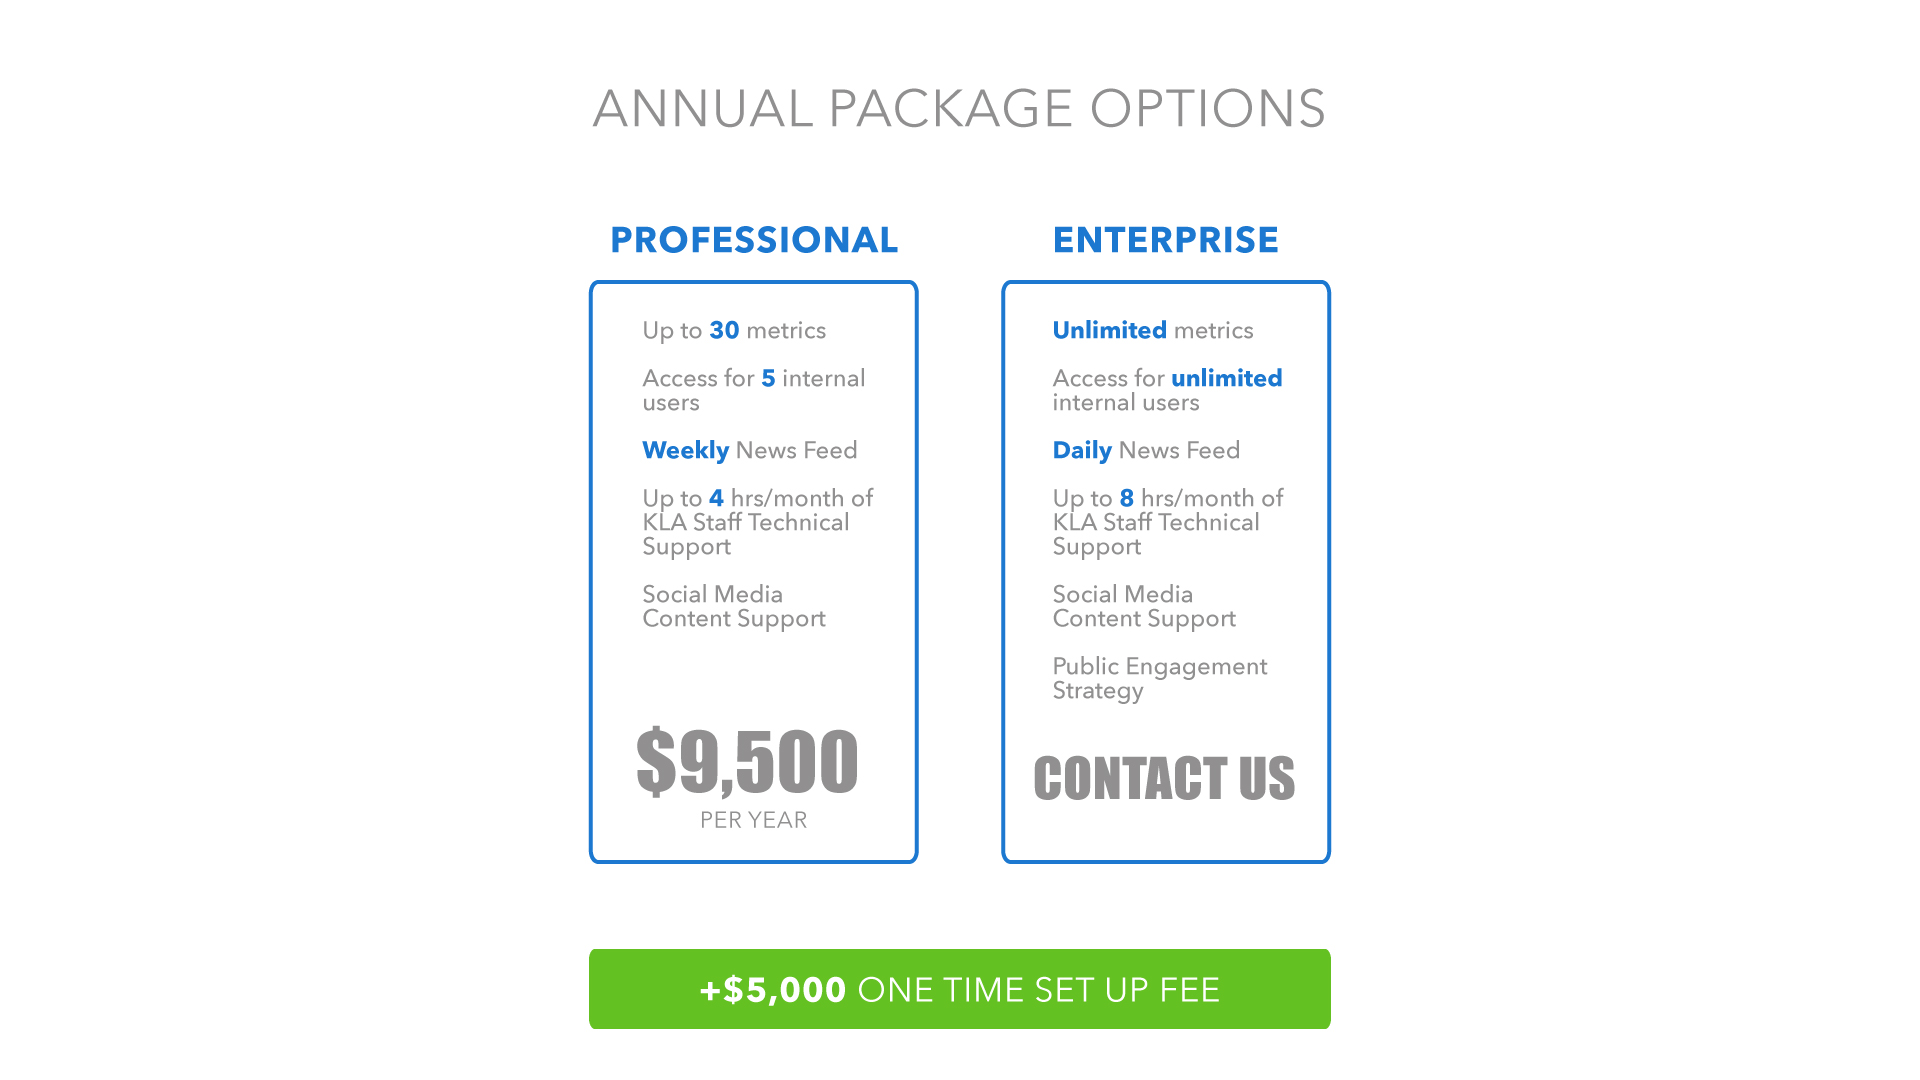 Annual Package Options